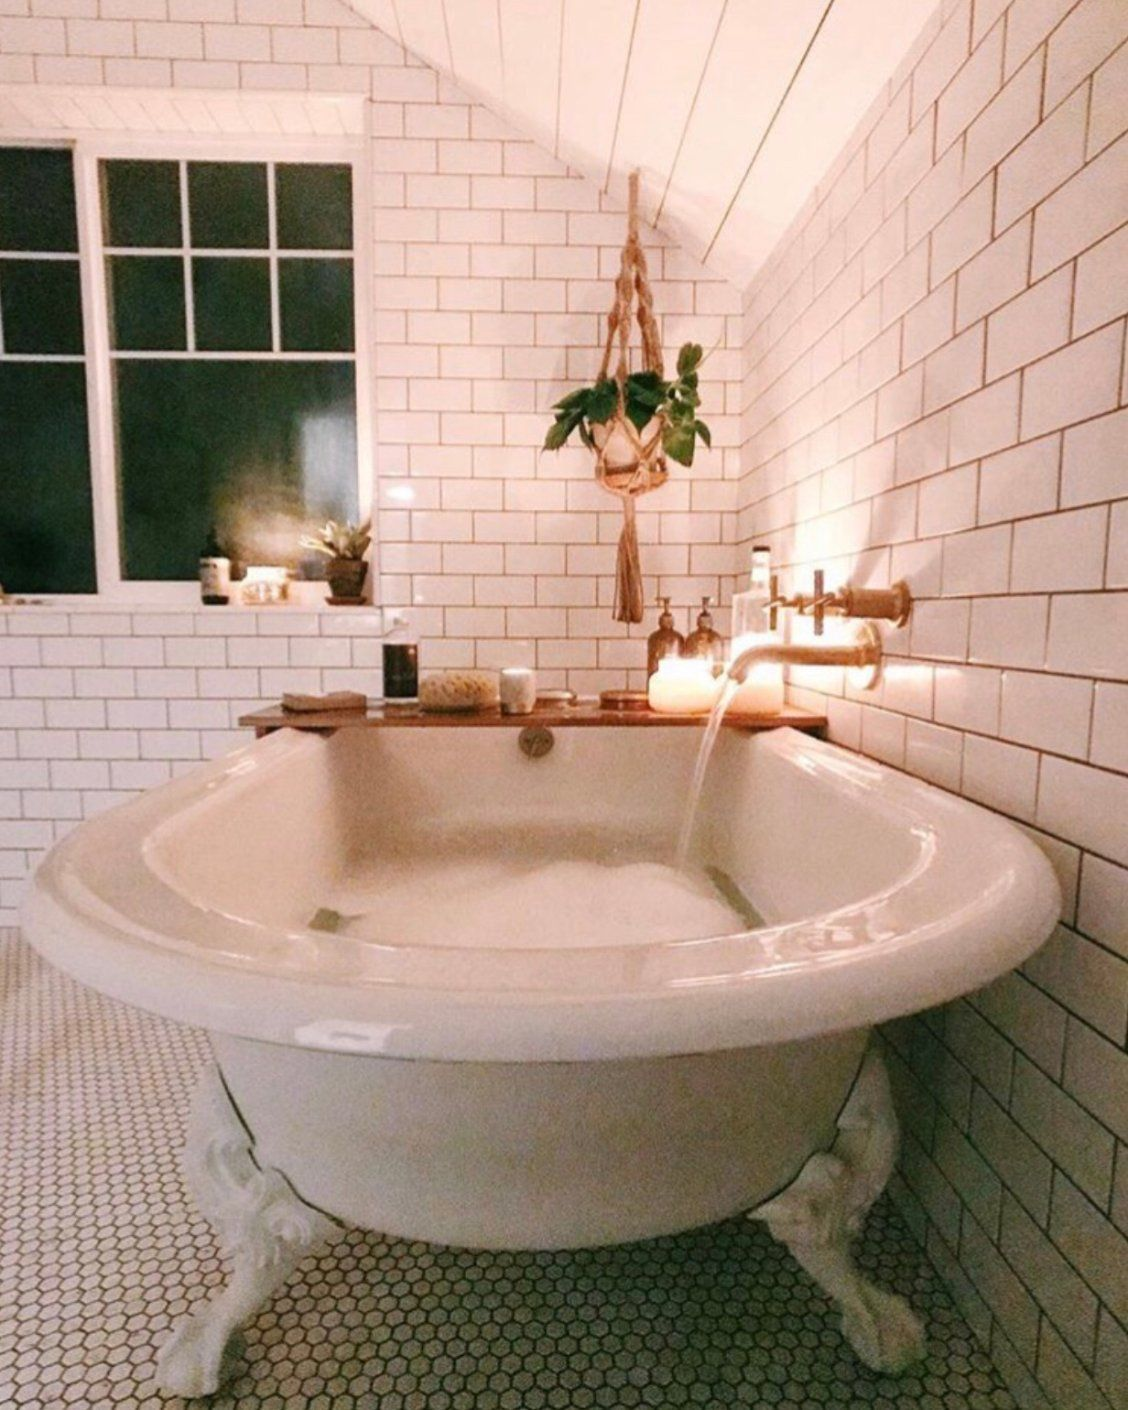 16 Soothing Spas And Saunas: Welcome To The #tubclub @saraparsons